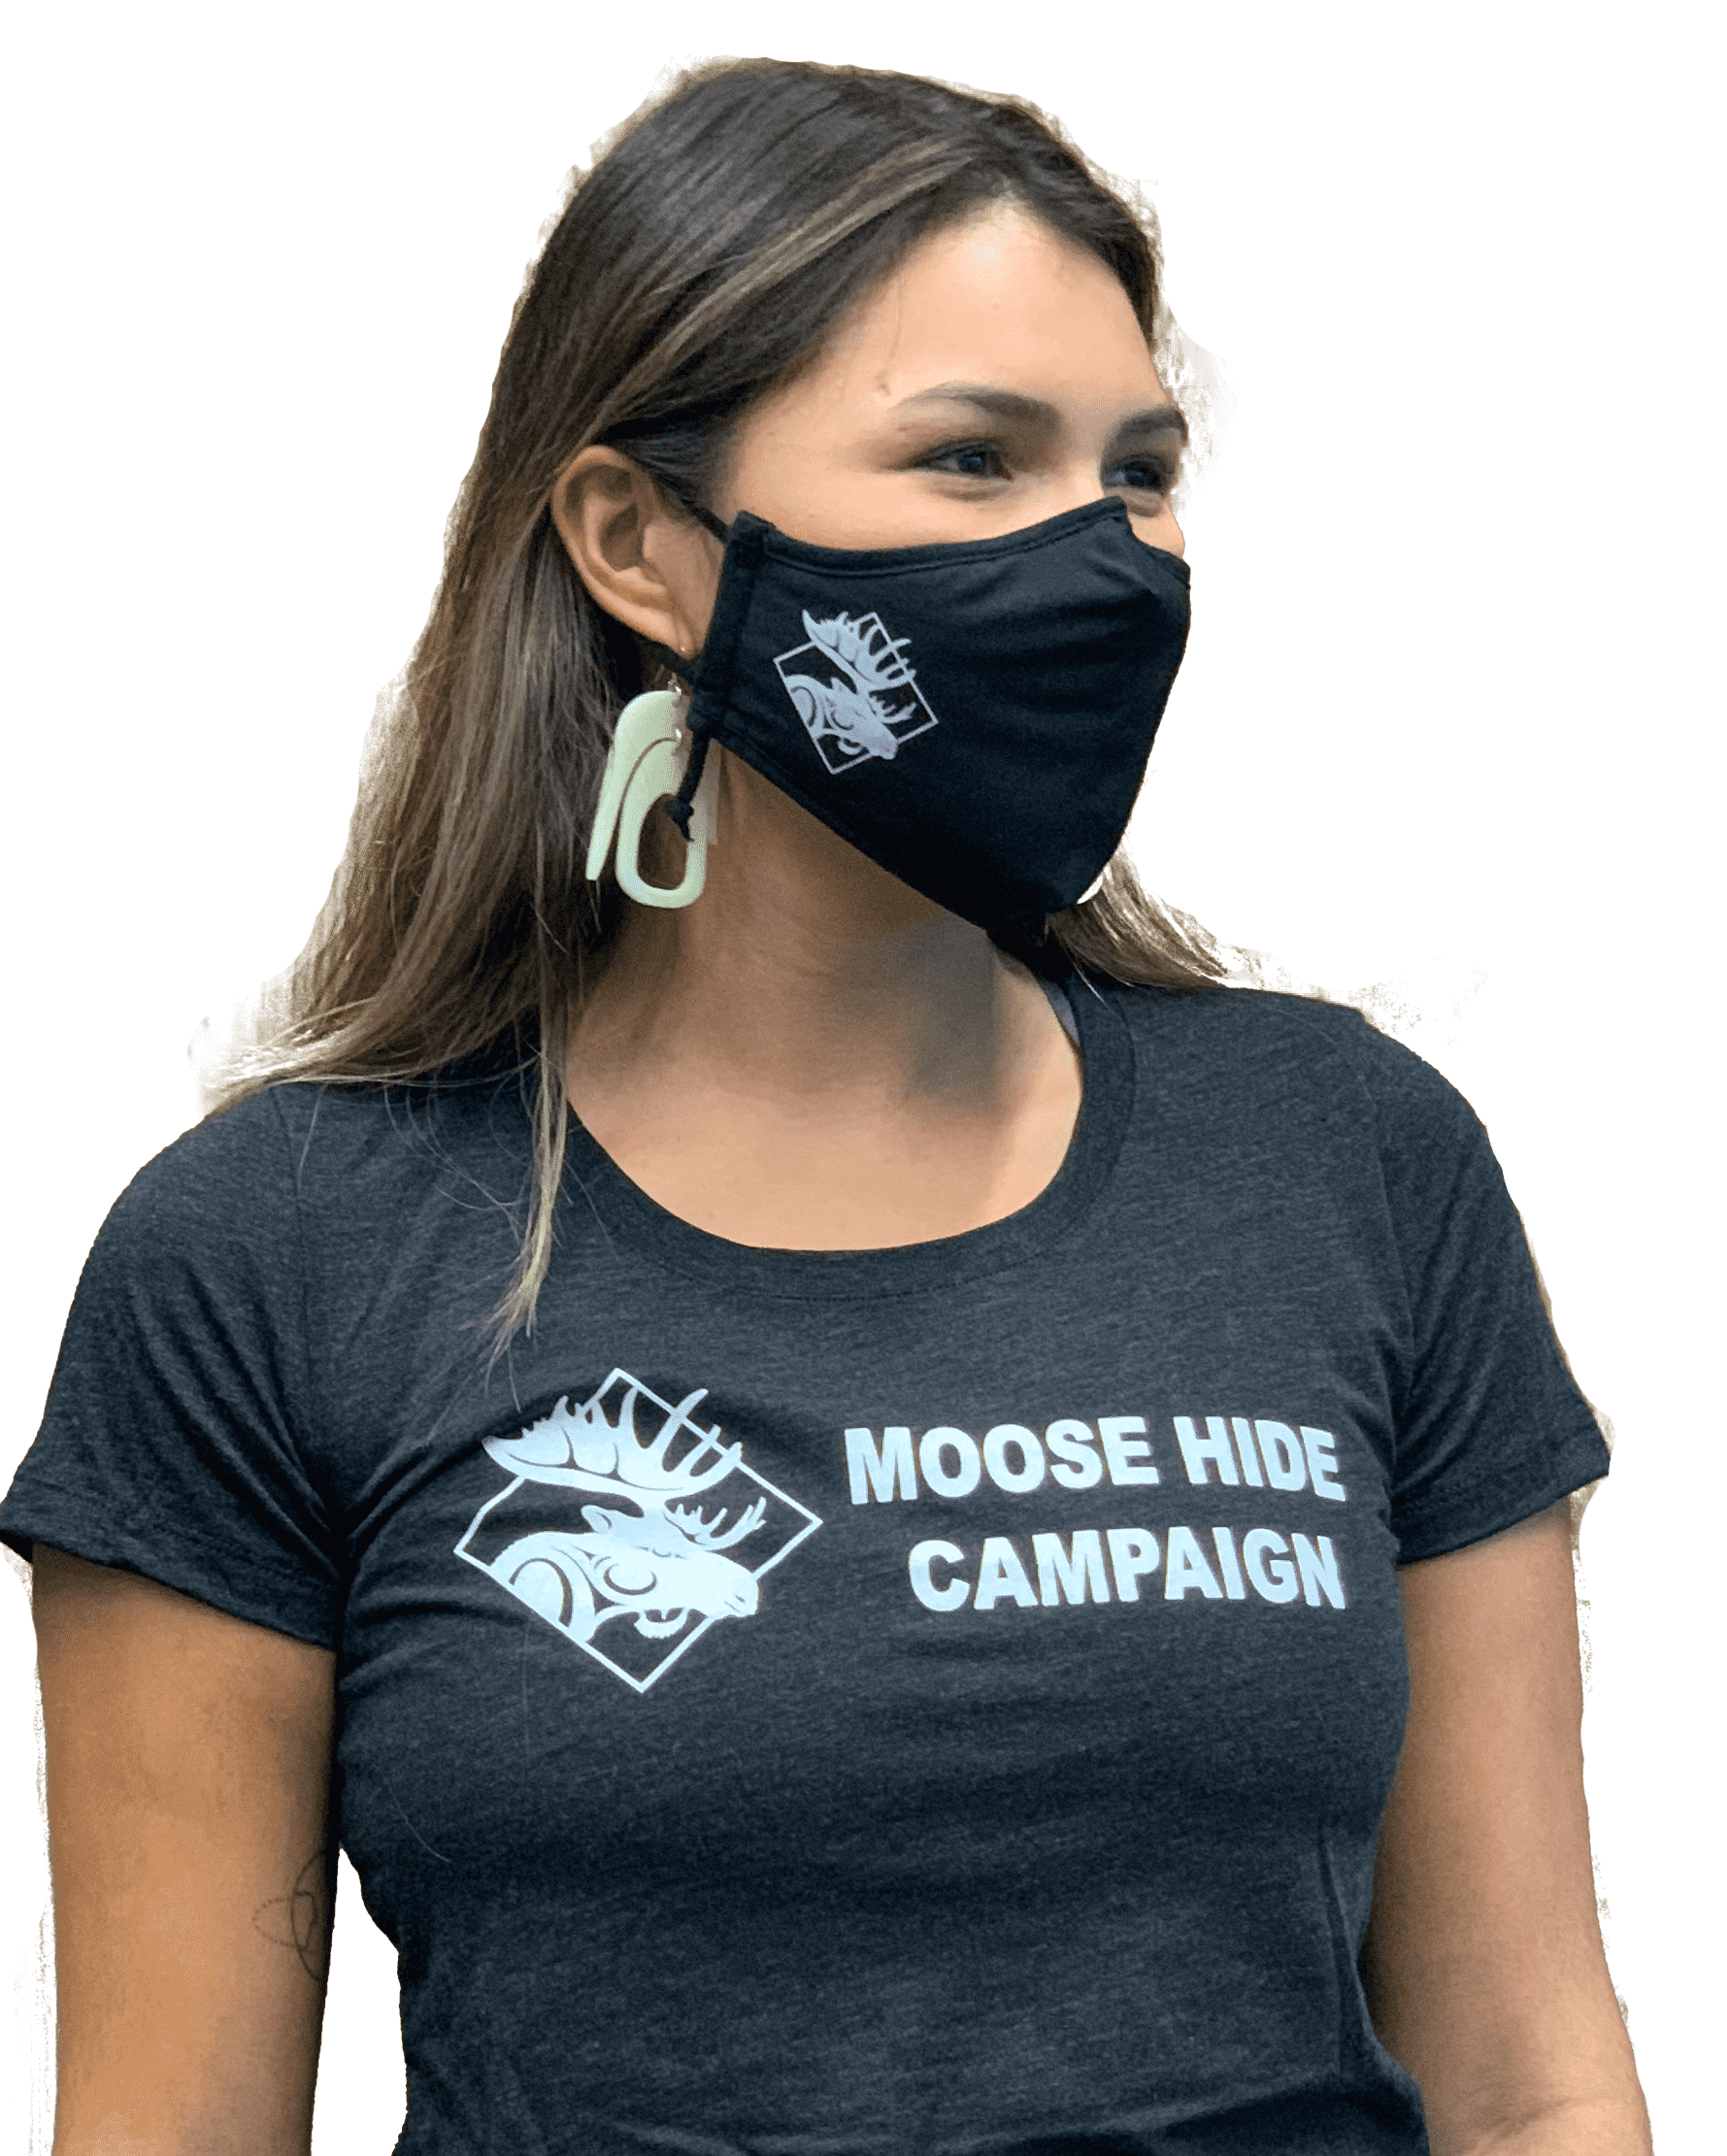 Sage Lacerte wearing tshirt and mask